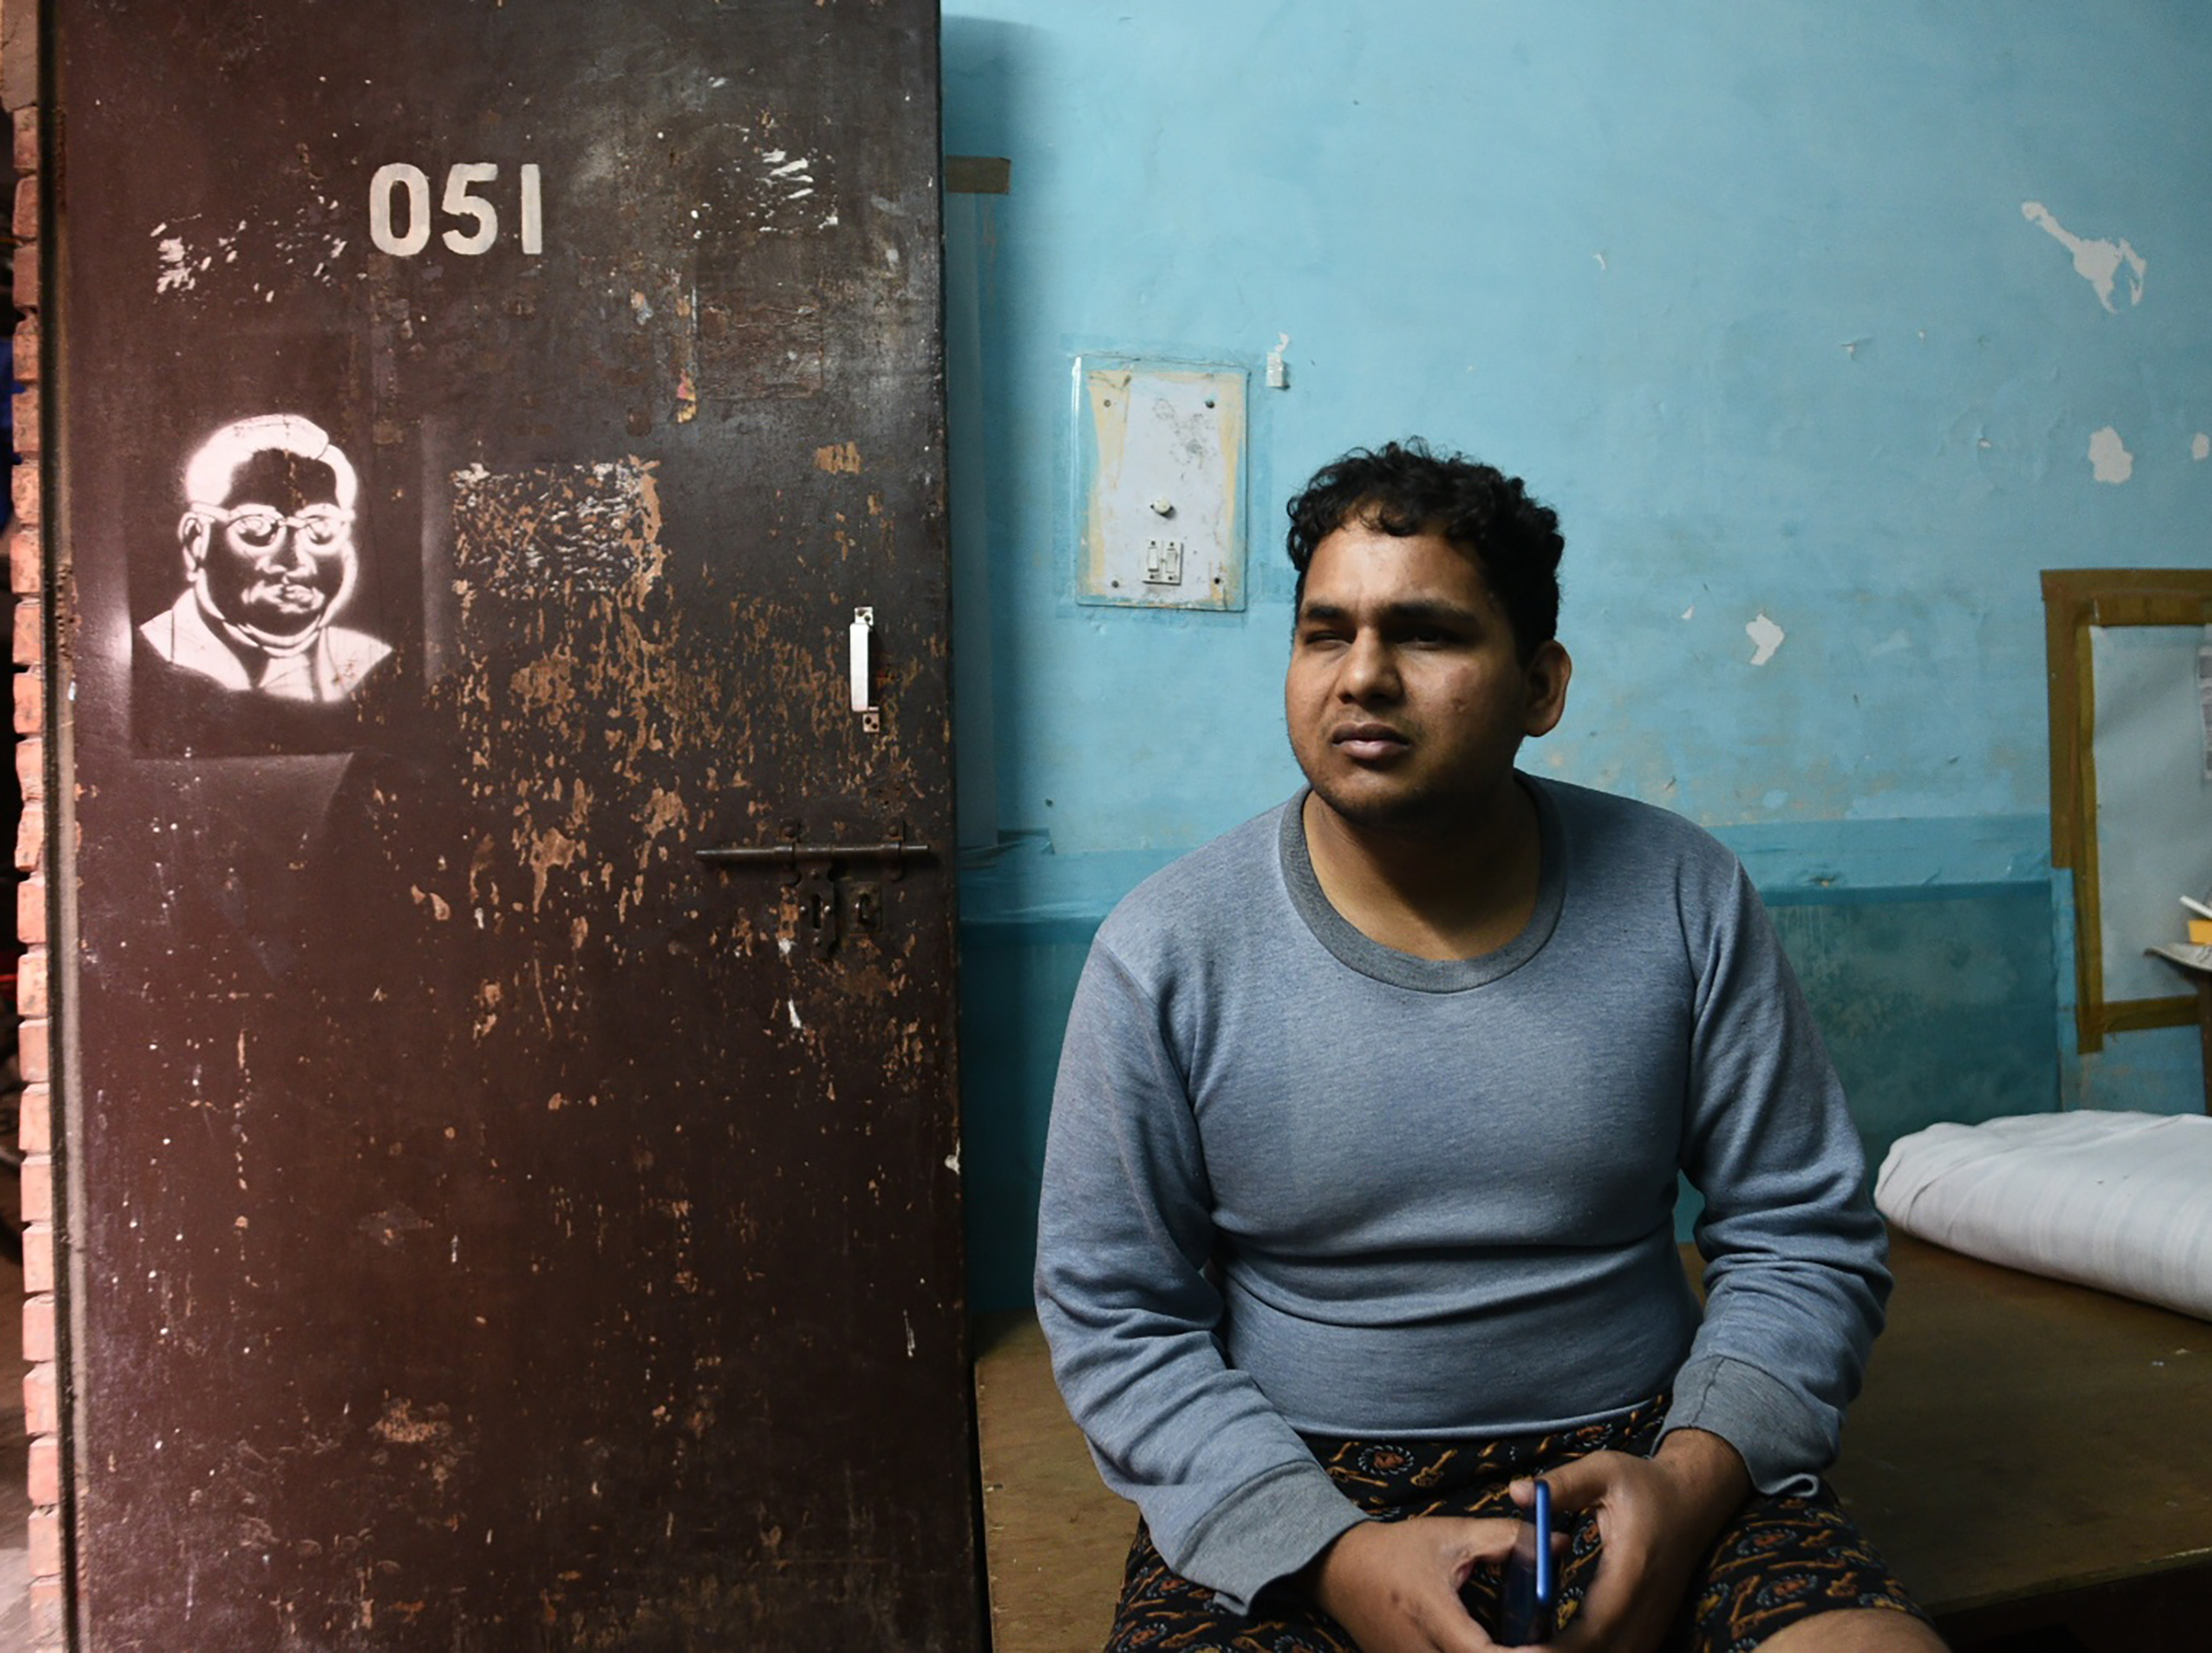 Suryaprakash, a blind research scholar pursuing an MPhil in Sanskrit, is seen sitting in his room at Sabarmati Hostel, Jawaharlal Nehru University (JNU), on Jan. 6, 2020 in New Delhi, India. He was also beaten up the day before during violence inside the campus.